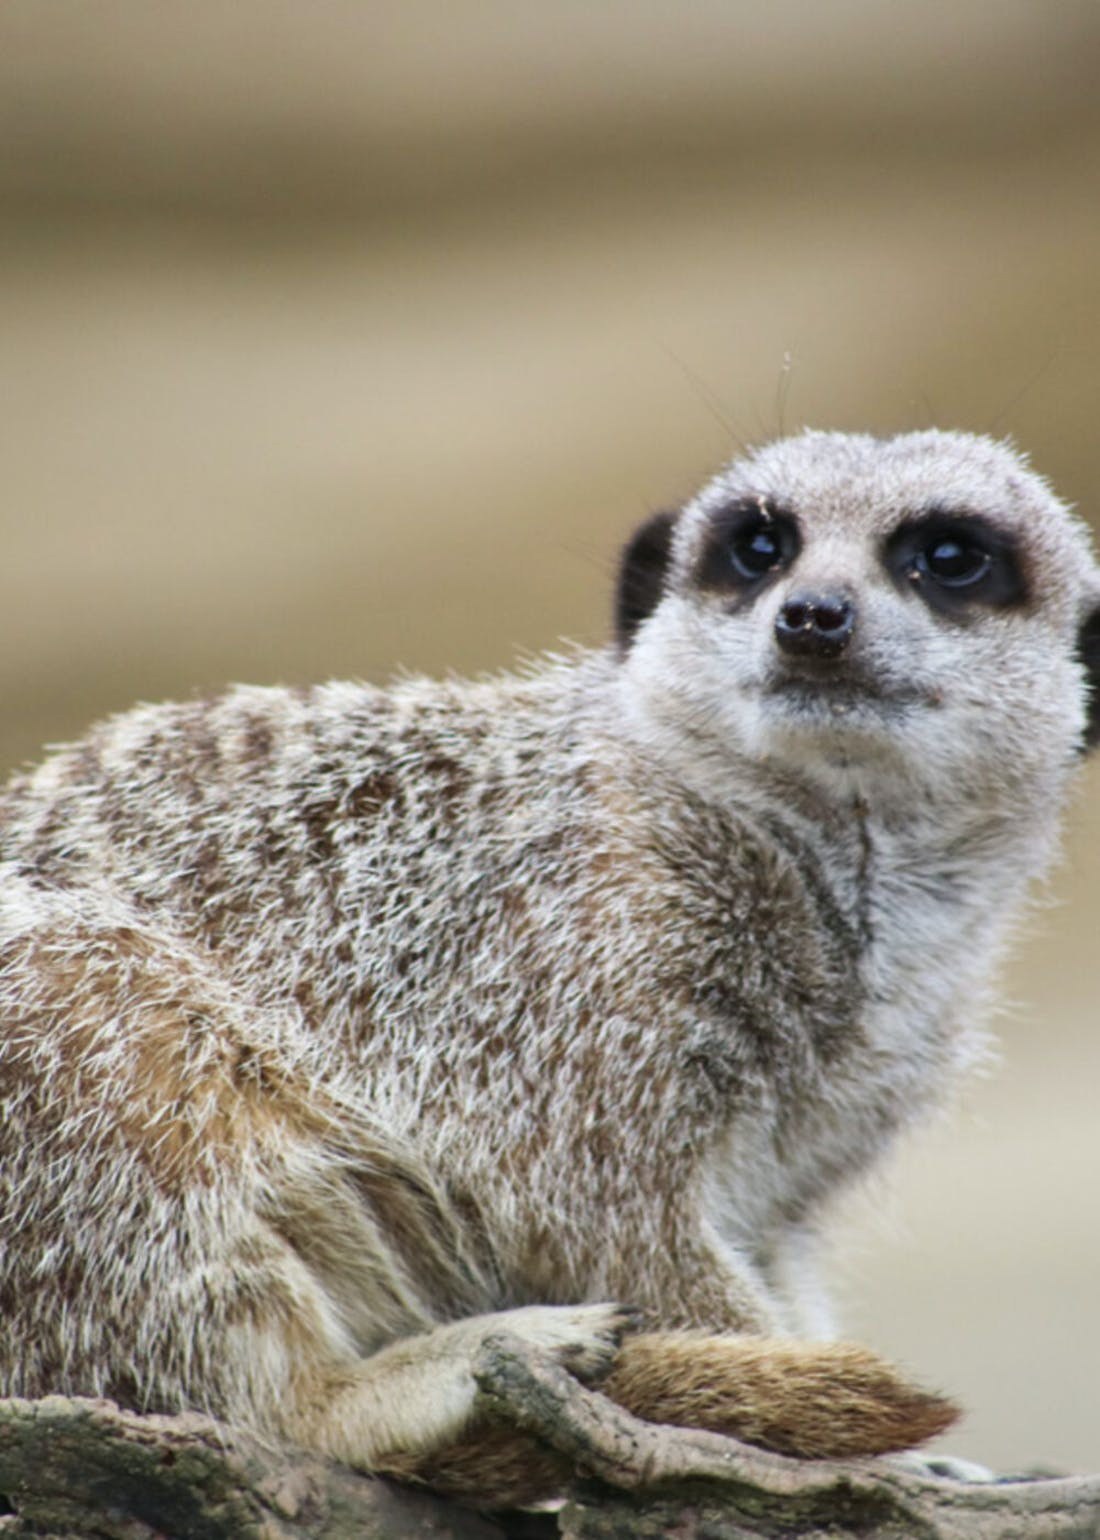 Virgin Experience Days Meet & Feed the Meerkats at Millets Falconry Centre